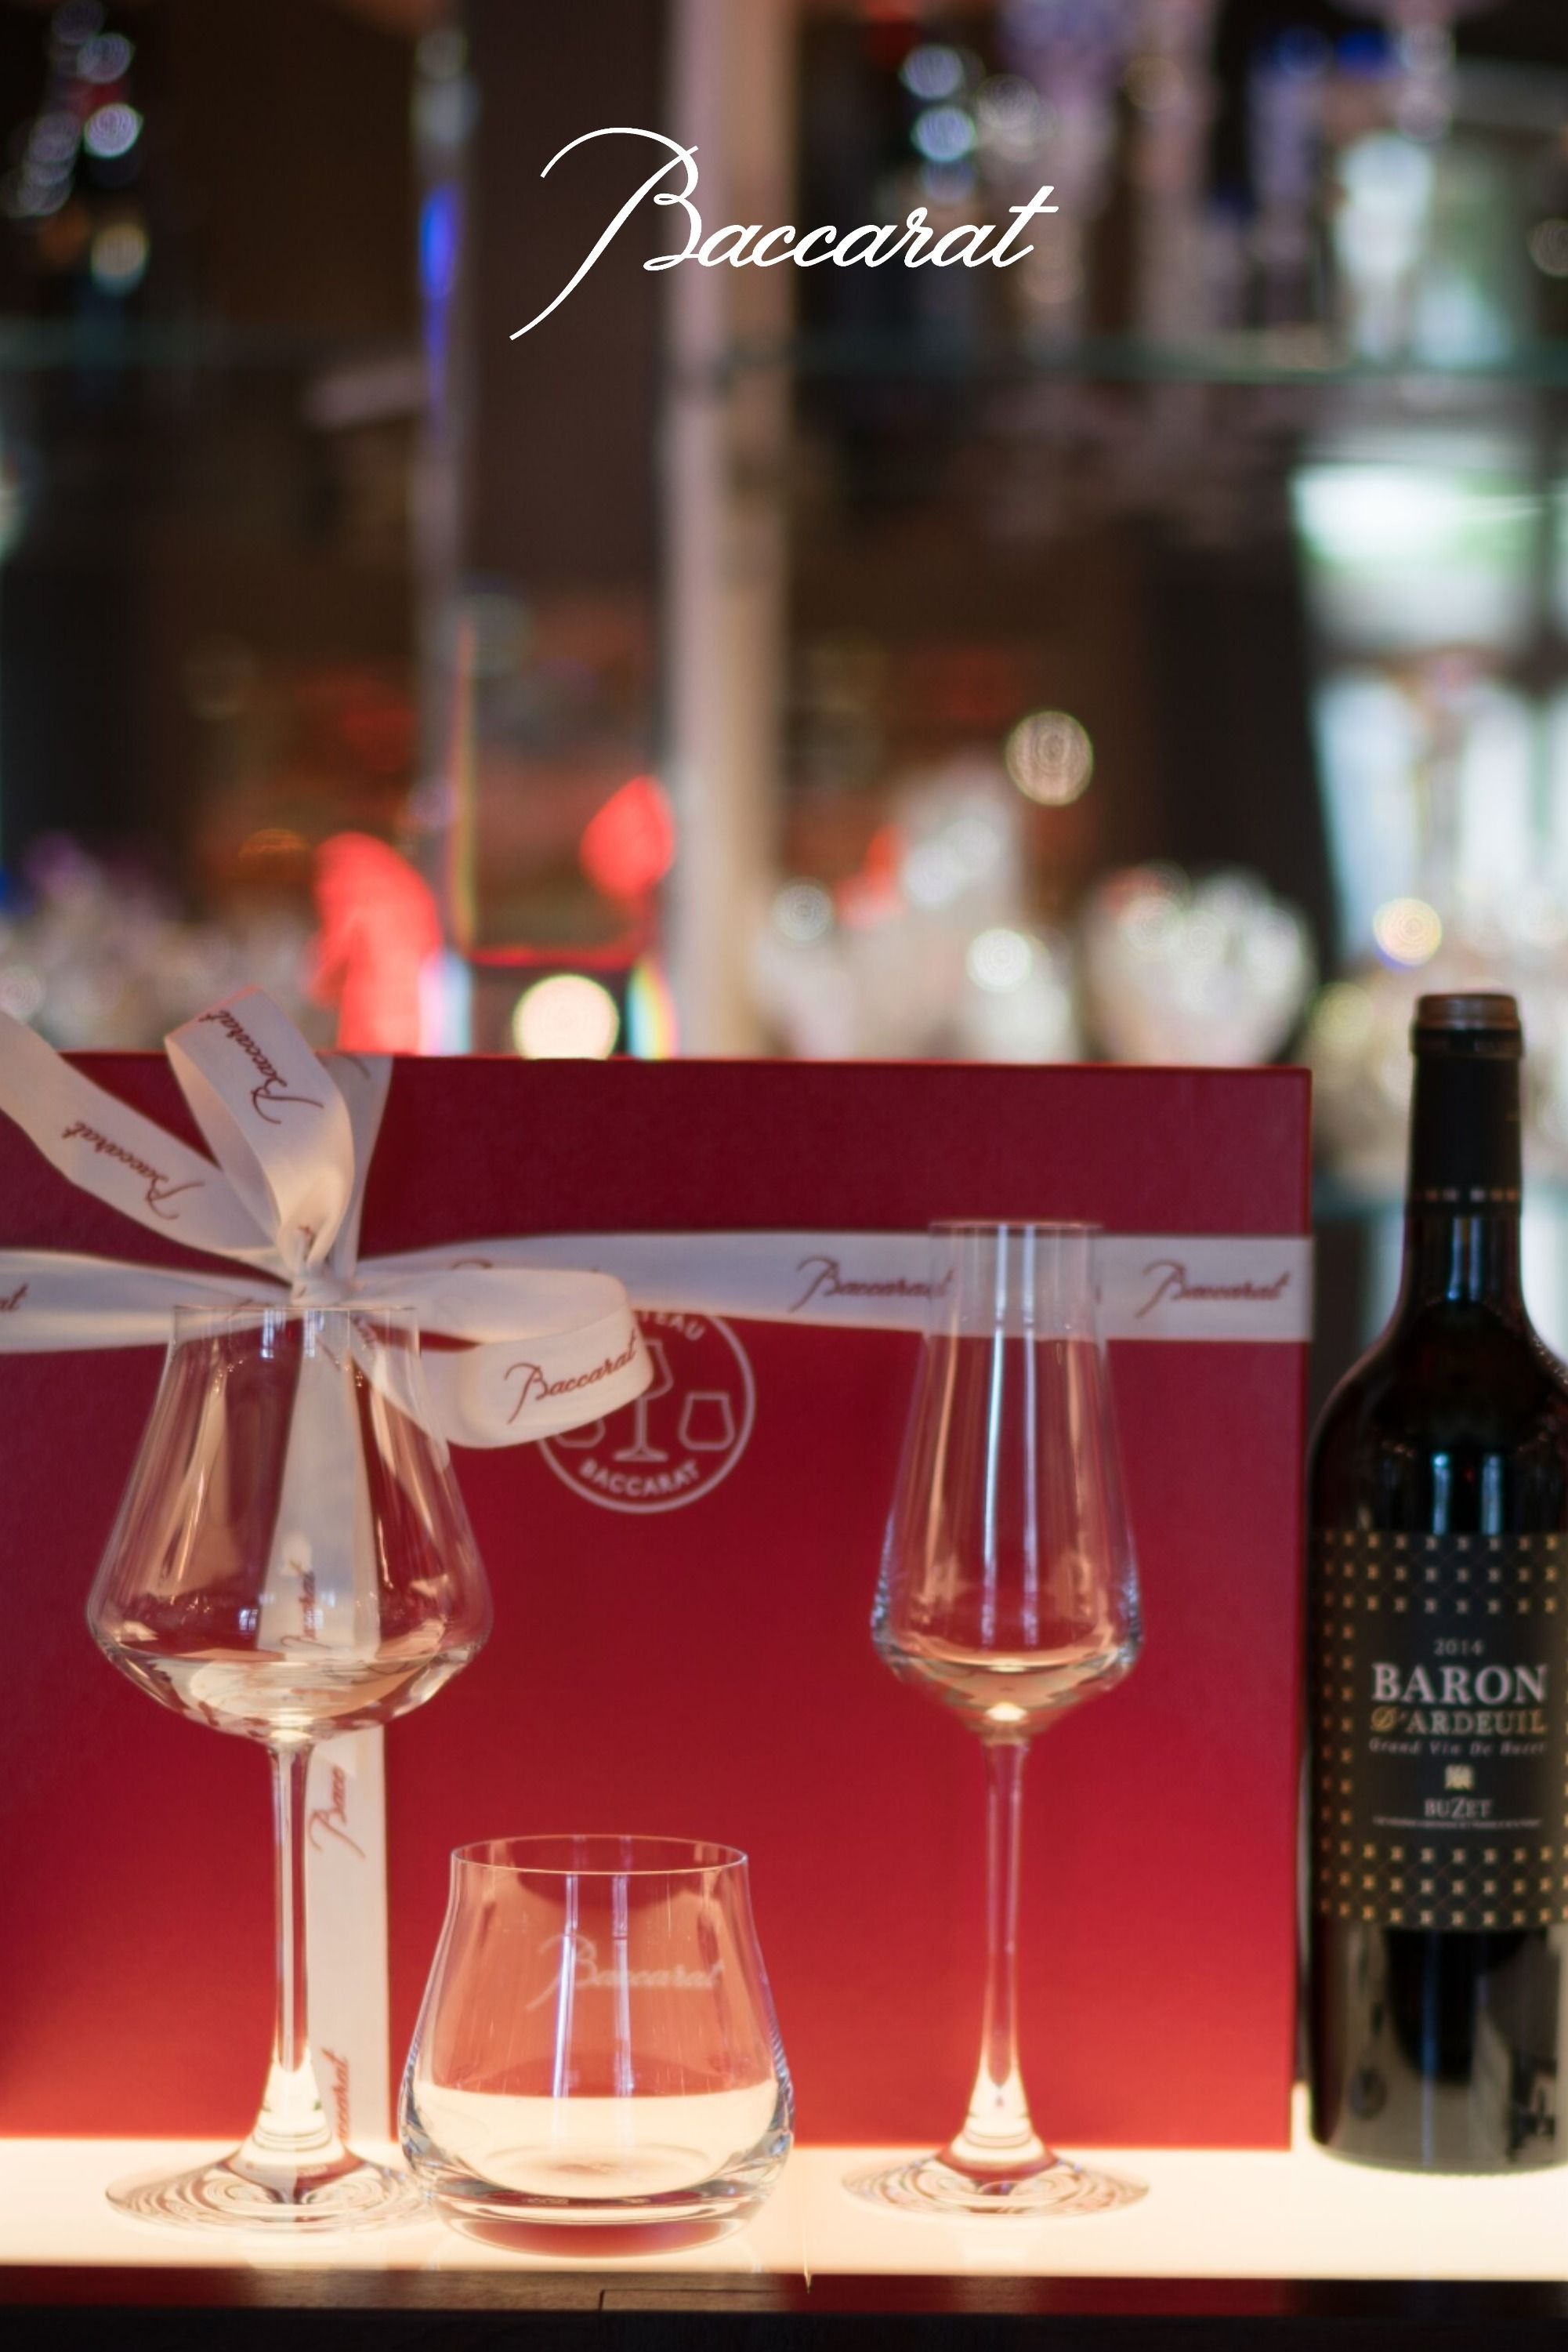 Chateau Baccarat Degustation Set In 2020 Baccarat Wine Tasting Wine And Spirits